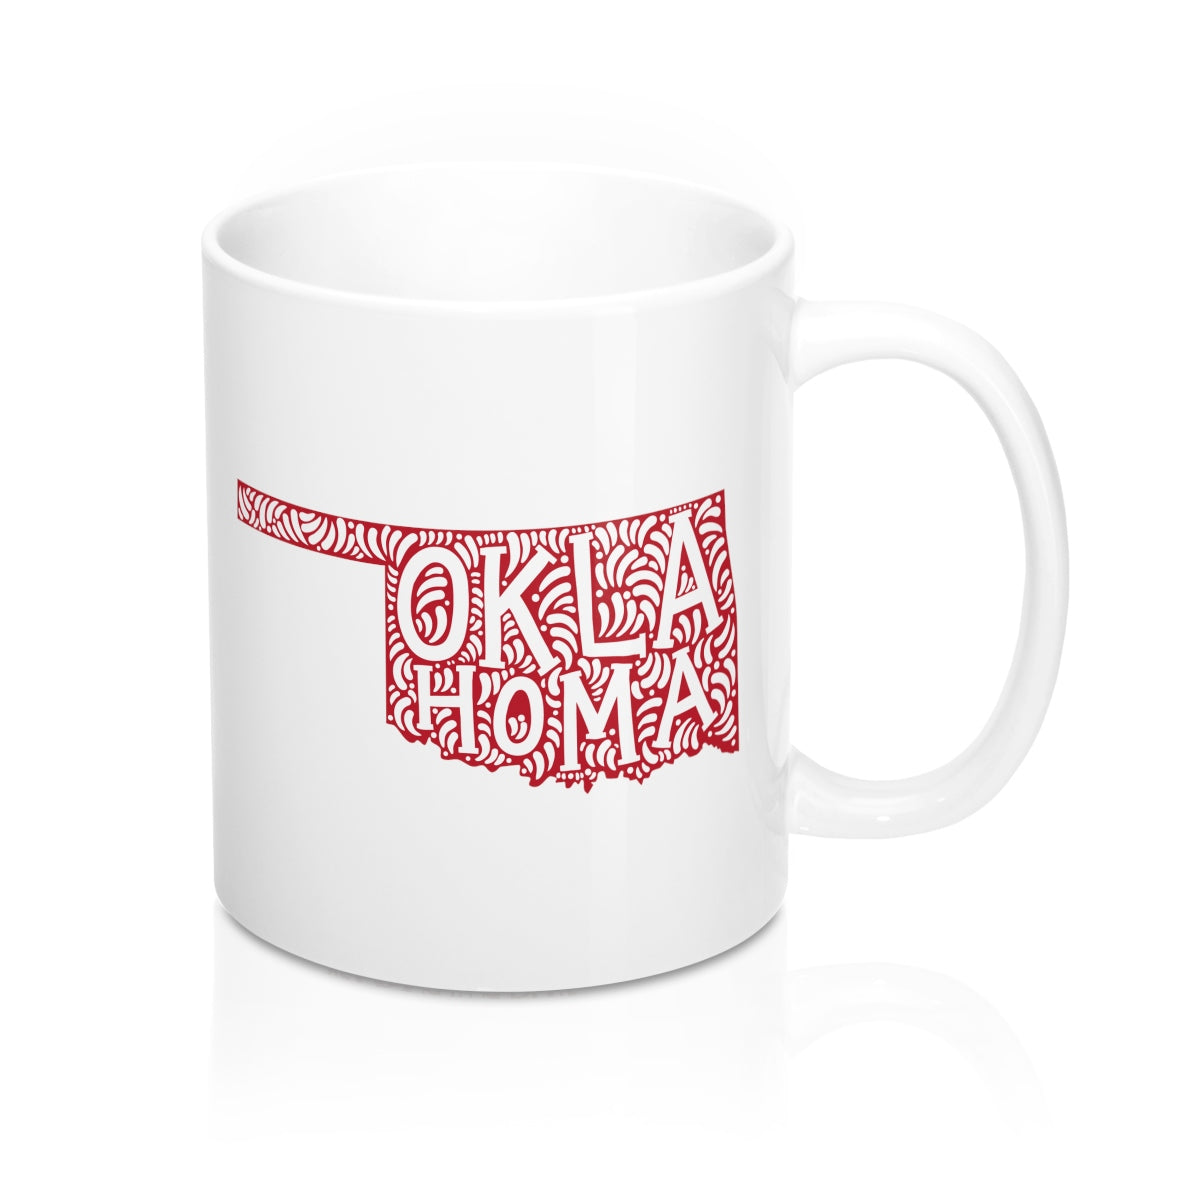 Oklahoma Stickers. CO State Outline, Oklahoma State Shape, City, Town Stickers, tshirt, t-shirt, hoodie